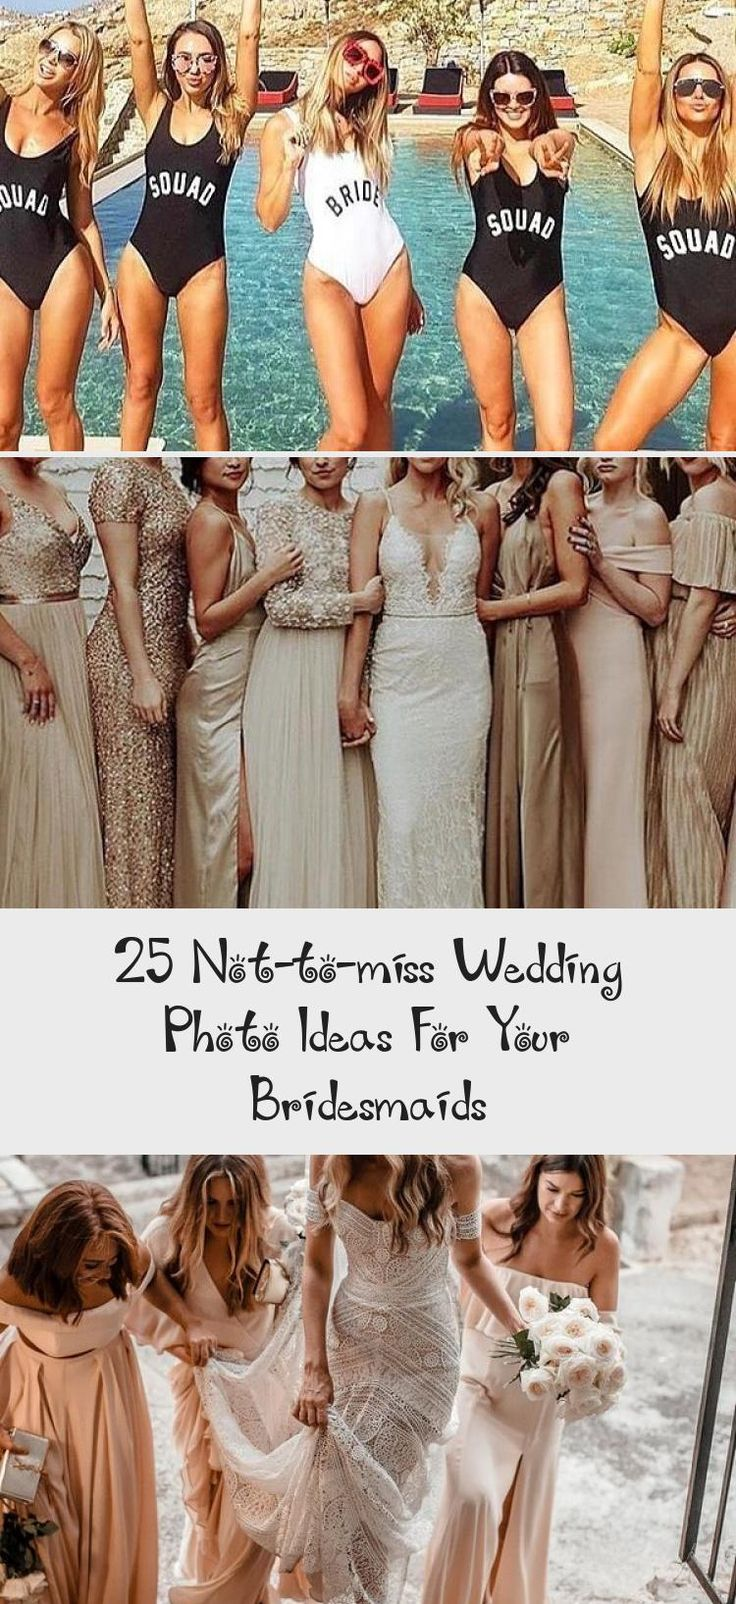 Wedding Photo Ideas For Your Bridesmaids  #wedding #weddingideas #weddingphotos #deerpearlflowers #BridesmaidDressesBoho #GrayBridesmaidDresses #BridesmaidDressesTeaLength #GoldBridesmaidDresses #OffTheShoulderBridesmaidDresses